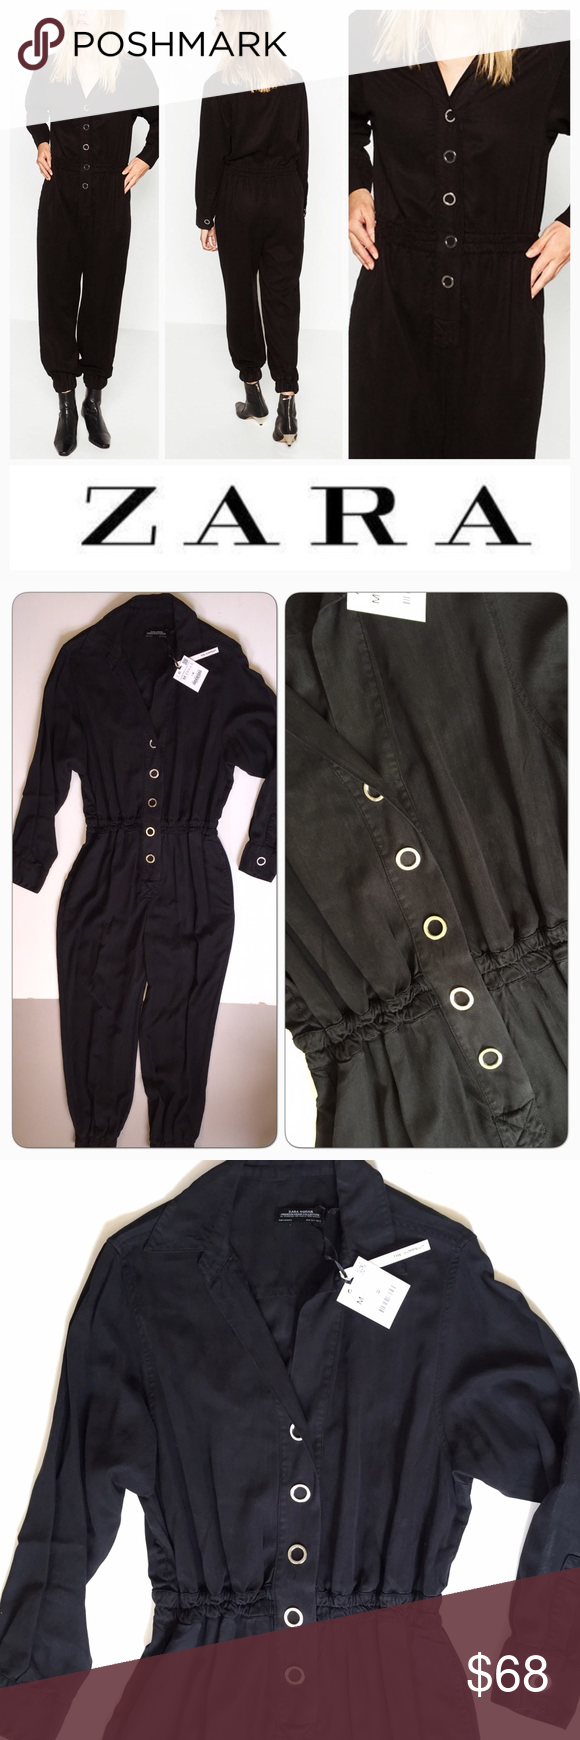 Zara NWT Black jumpsuit overall new M Beautiful trendy jumpsuit by Zara.  Soft brushed Black twill.  Snap closure front.  Cinched elastic hems.  Great style and comfort.   Brand new with tags. From a smoke/pet free home.   Ref203 Zara Pants Jumpsuits & Rompers